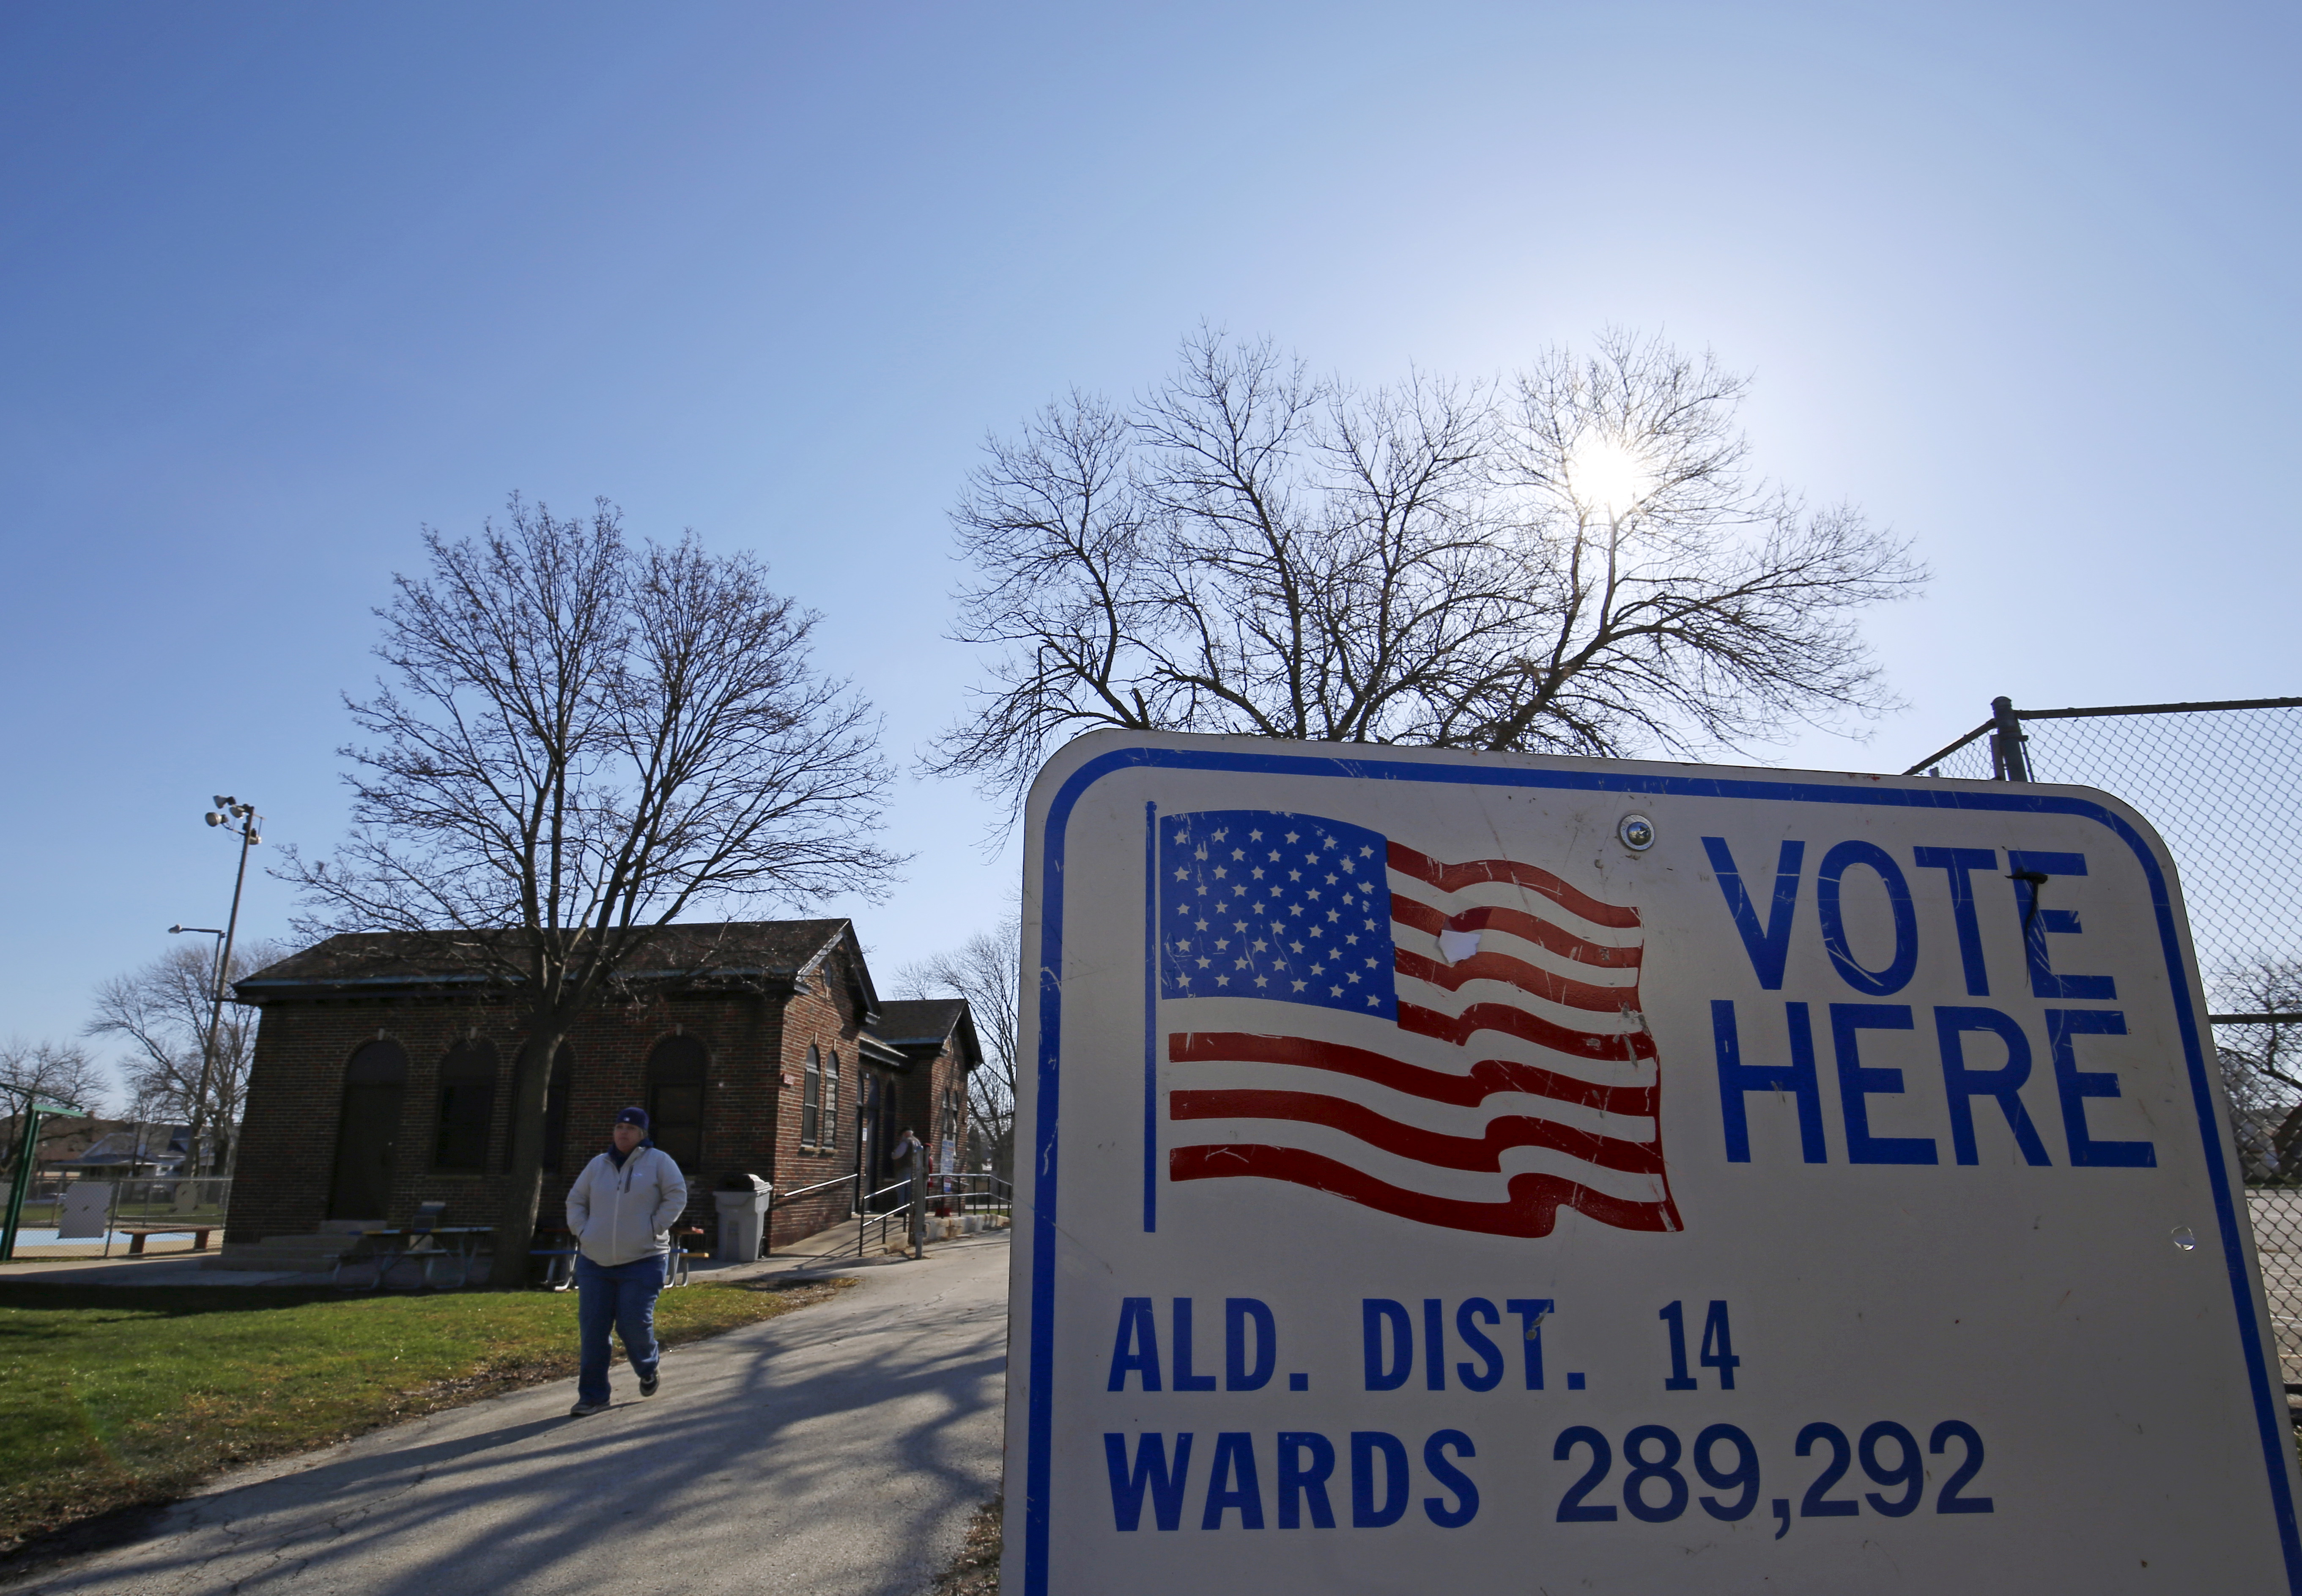 Federal judge: Voters without ID may vote in November by signing affidavit